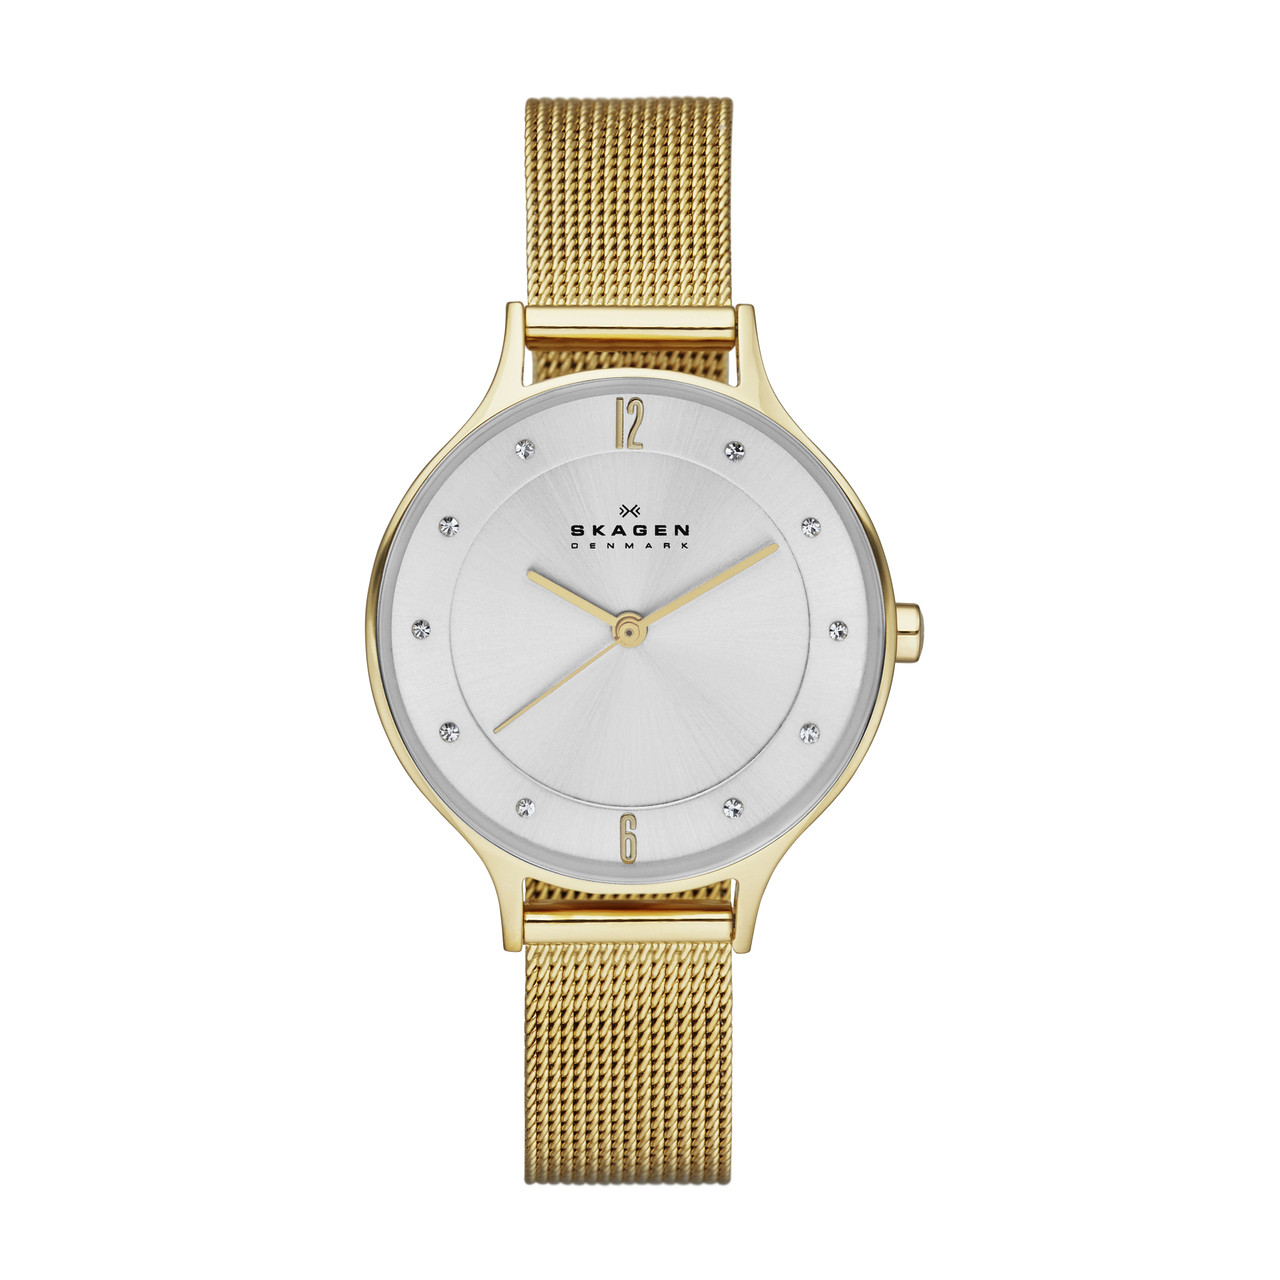 Watch Review - Skagen SKW2150 Anita Ladies Gold Mesh Strap Watch